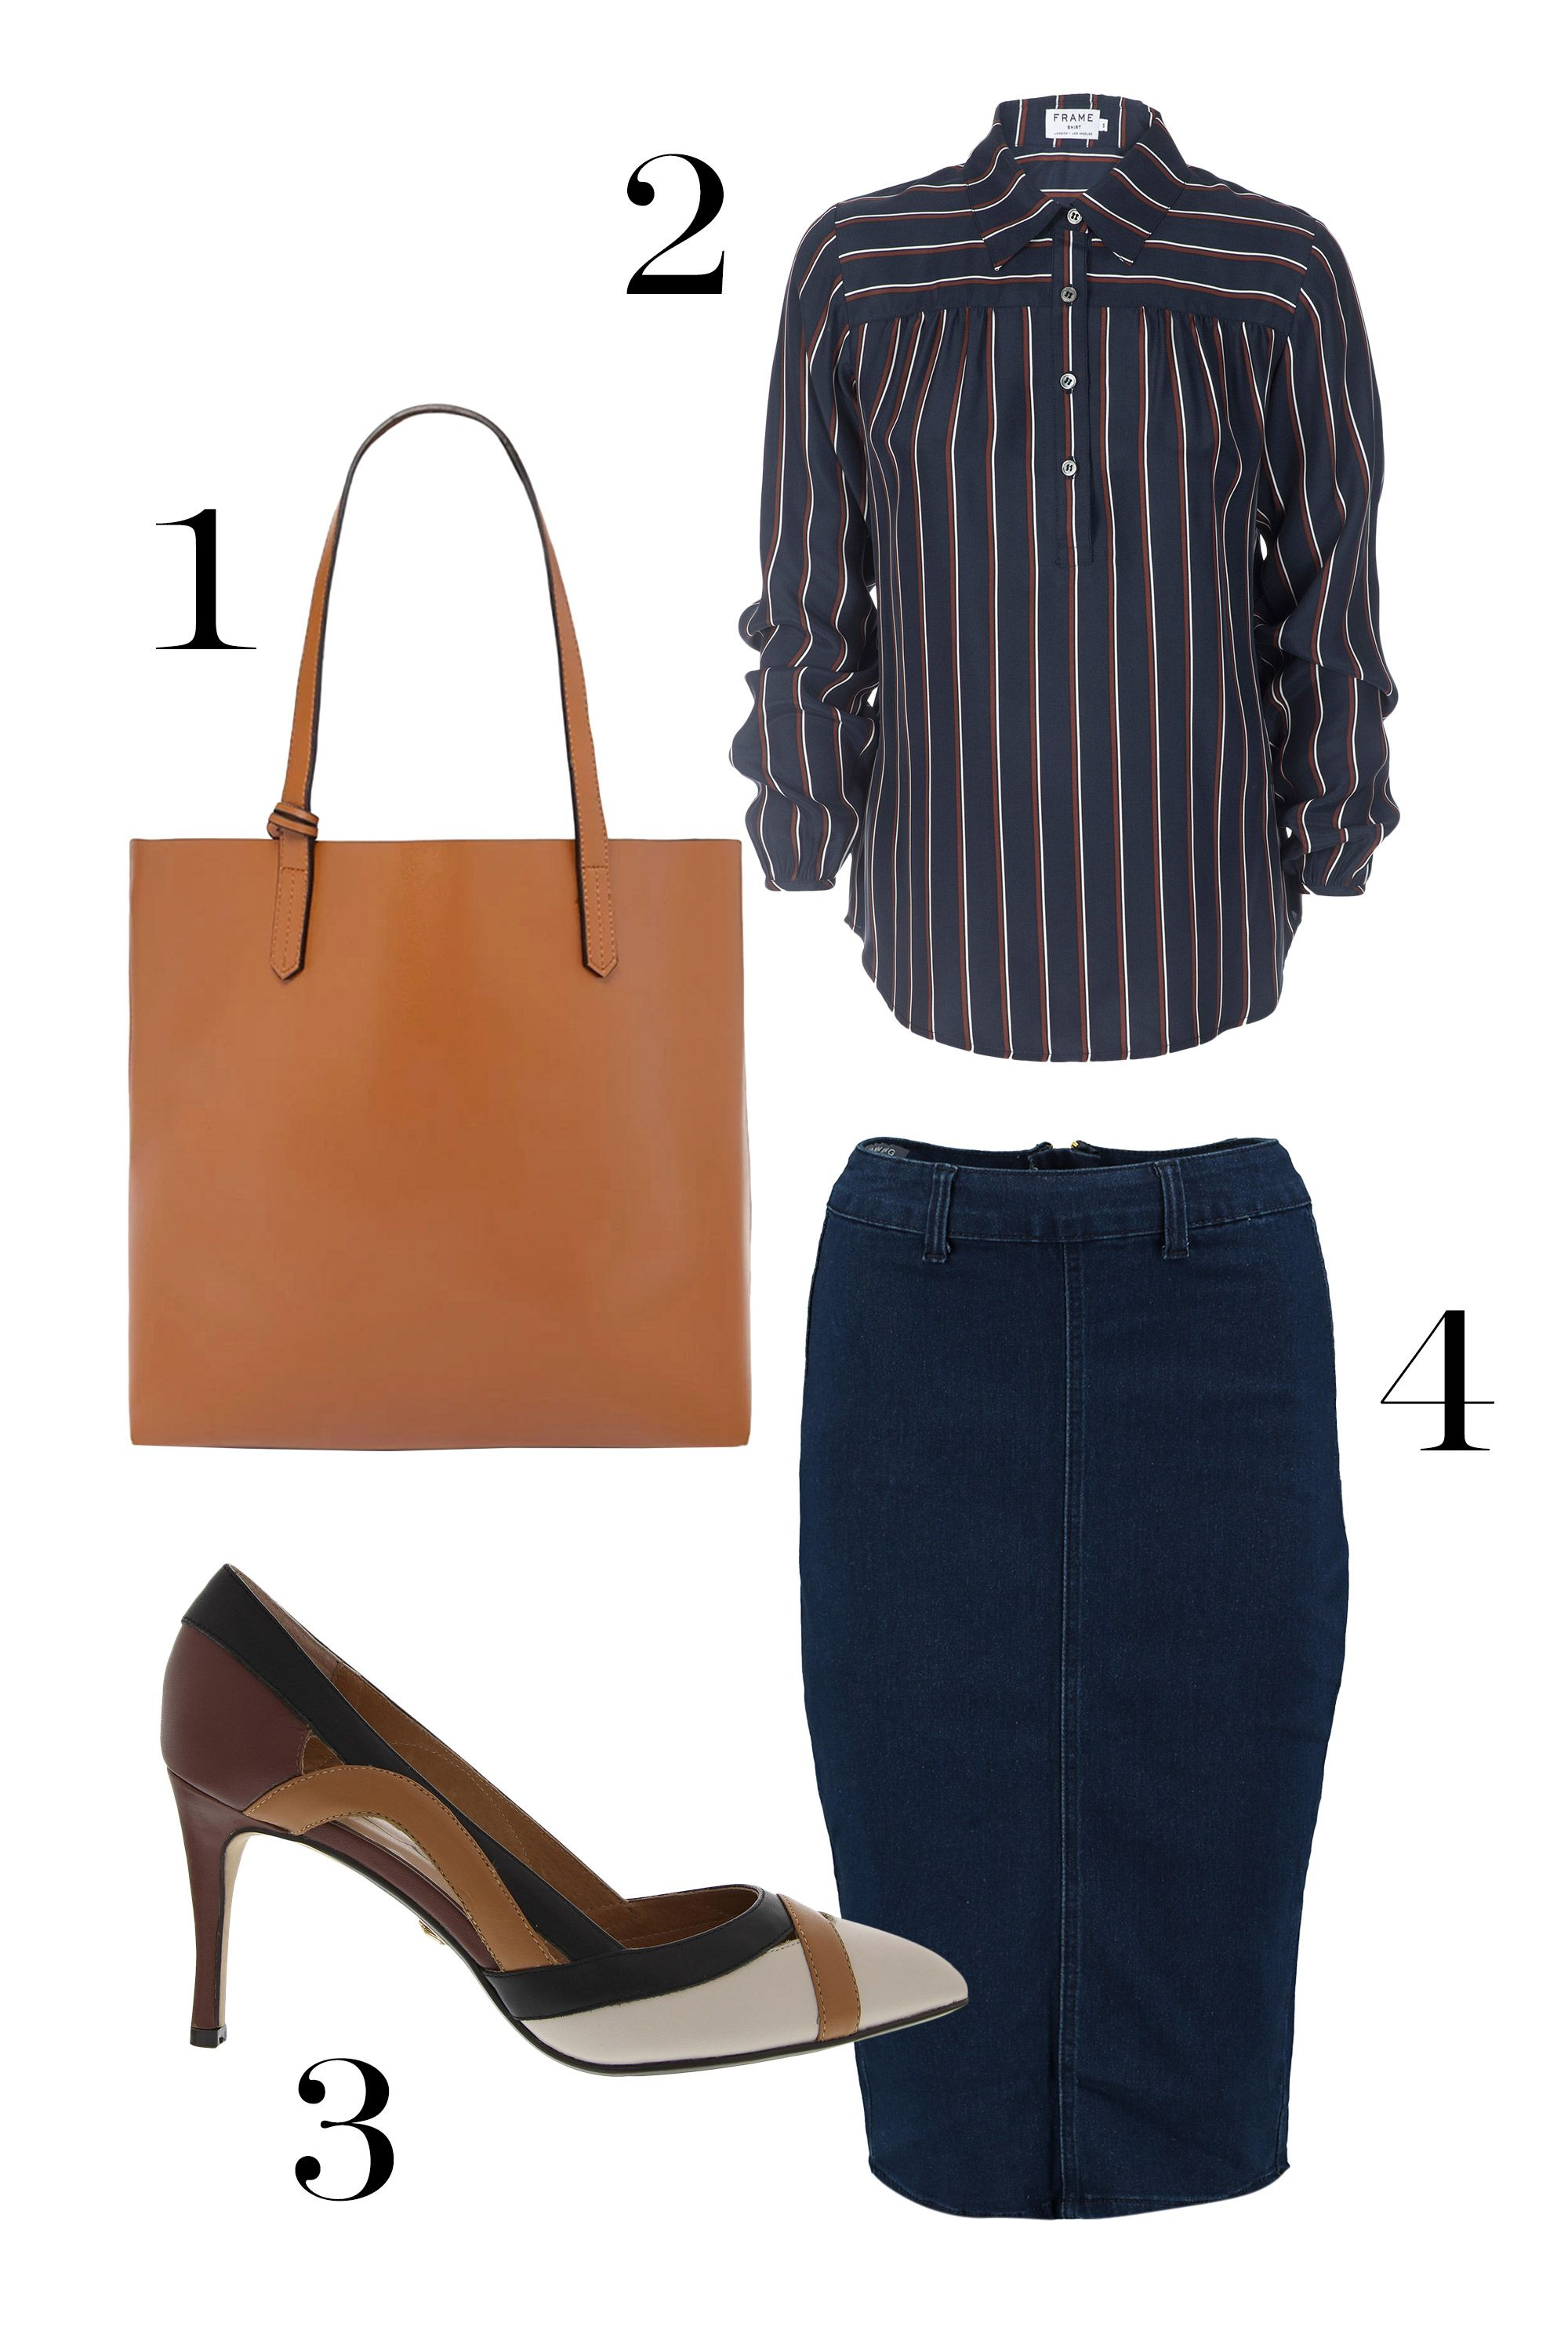 "<p>Jeans only acceptable on Fridays? (Or just an anti-pants gal?) Try a denim take on the always-appropriate pencil skirt. Pair with heels and a structured bag for a look that's still totally appropriate for meetings with the boss. </p><p>1. Oversized faux leather bag, $30&#x3B; <a href=""http://www.forever21.com/Product/Product.aspx?BR=f21&Category=acc_handbags&ProductID=1000165222&VariantID= "" target=""_blank"">forever21.com</a></p><p>2. Frame Le Drope Yoke Popover Blouse, $258&#x3B; <a href=""https://www.shopbop.com/drope-yoke-popover-frame/vp/v=1/1549649743.htm?folderID=2534374302060711&fm=other-shopbysize&os=false&colorId=83977"" target=""_blank"">shopbop.com</a></p><p>3. Nina Agenda, $148&#x3B; <a href=""http://ninashoes.com/nina-agenda_3550"" target=""_blank"">ninashoes.com</a></p><p>4. Jenna High Waisted Skirt, $30&#x3B; <a href=""http://www.boohoo.com/usa/denim/jenna-high-waisted-denim-pencil-skirt/invt/dzz97986 "" target=""_blank"">boohoo.com</a></p>"